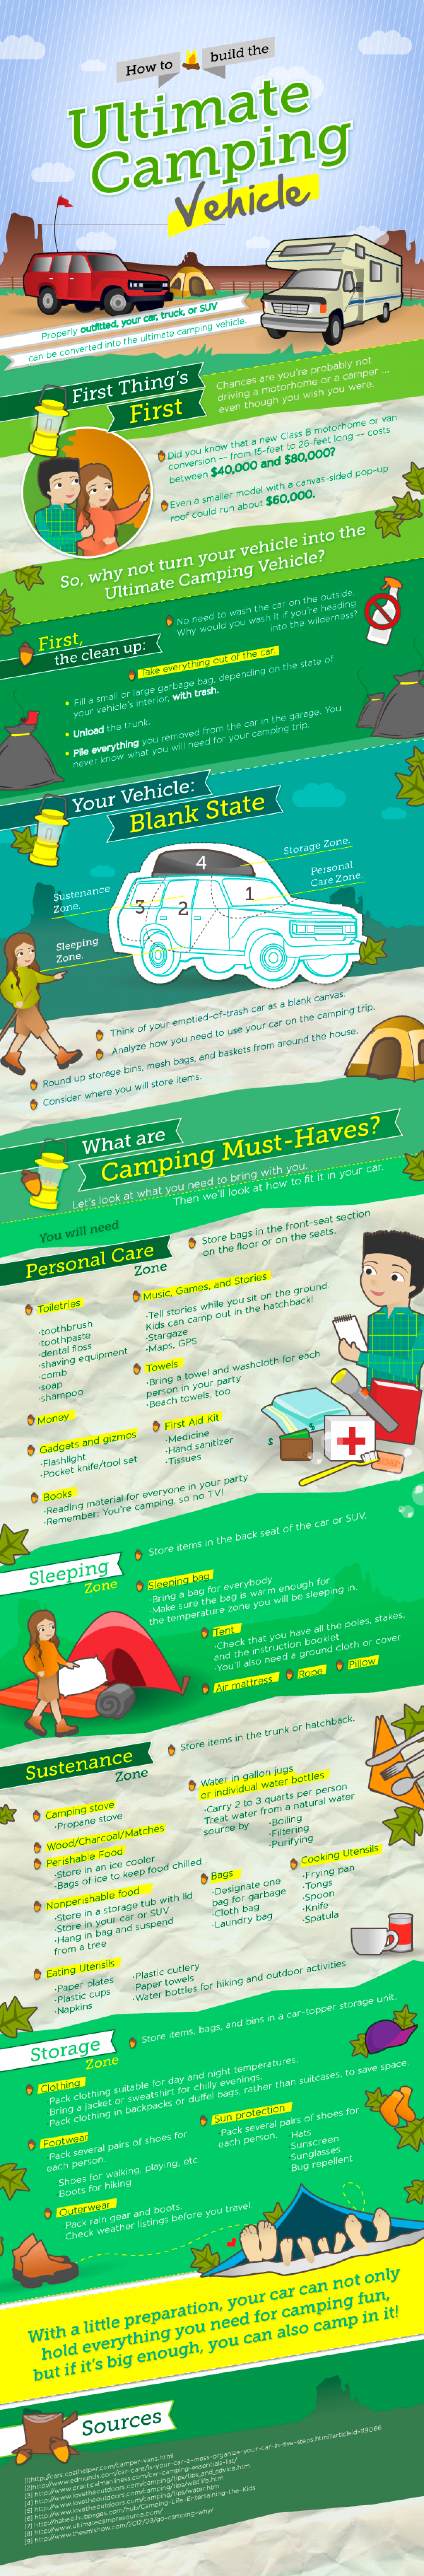 How to Build the Ultimate Camping Vehicle Infographic